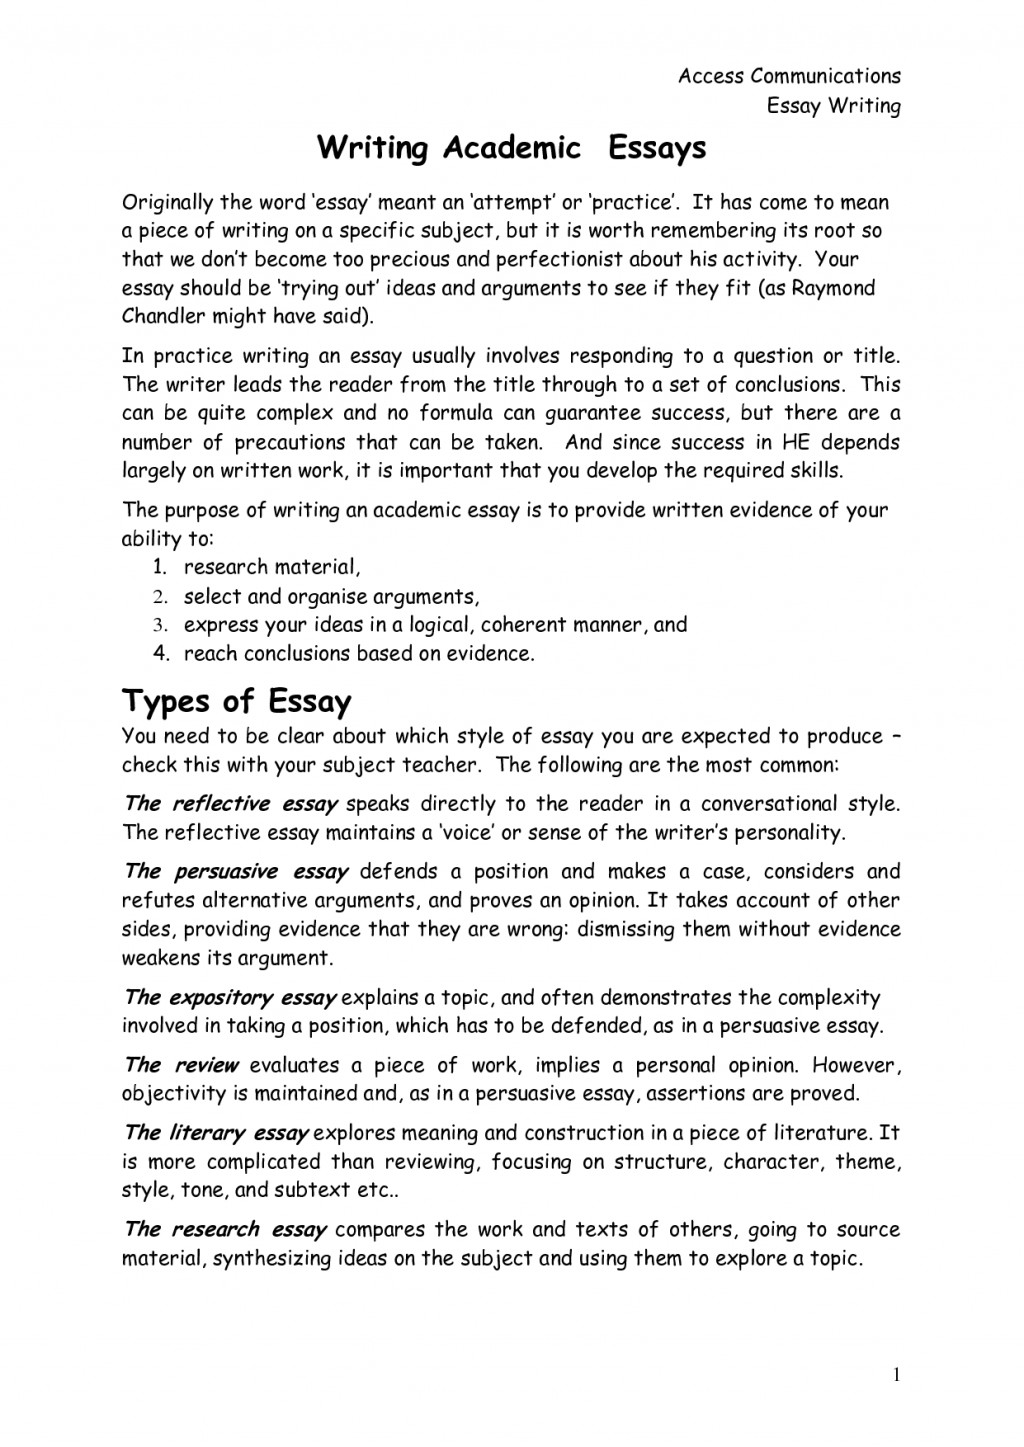 017 Essay Example How To Start Reflective Surprising A Introduction Sample Do You Write An For Large